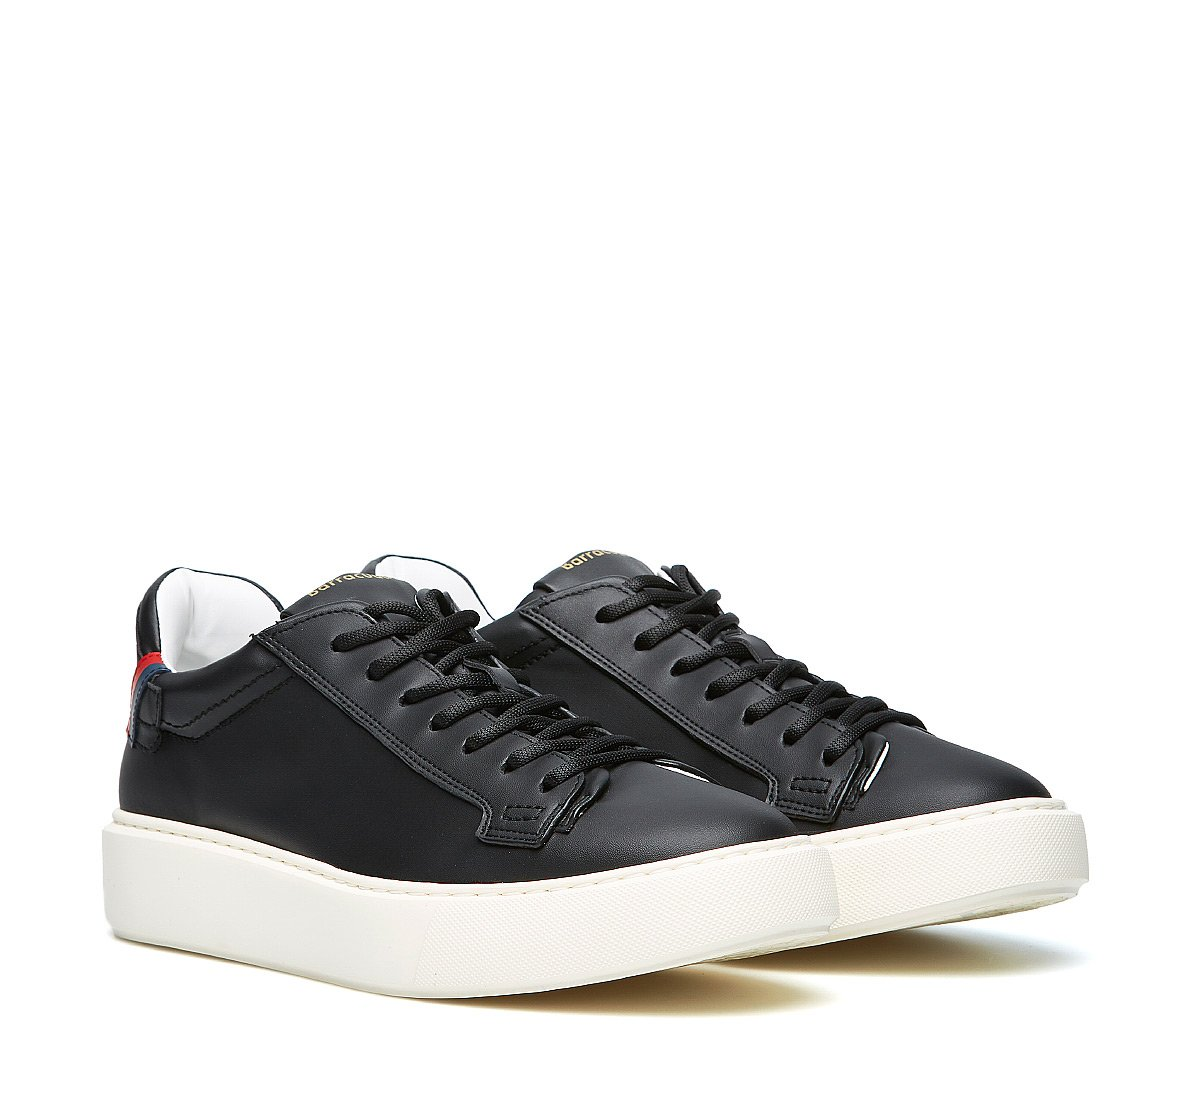 Barracuda Collins sneakers